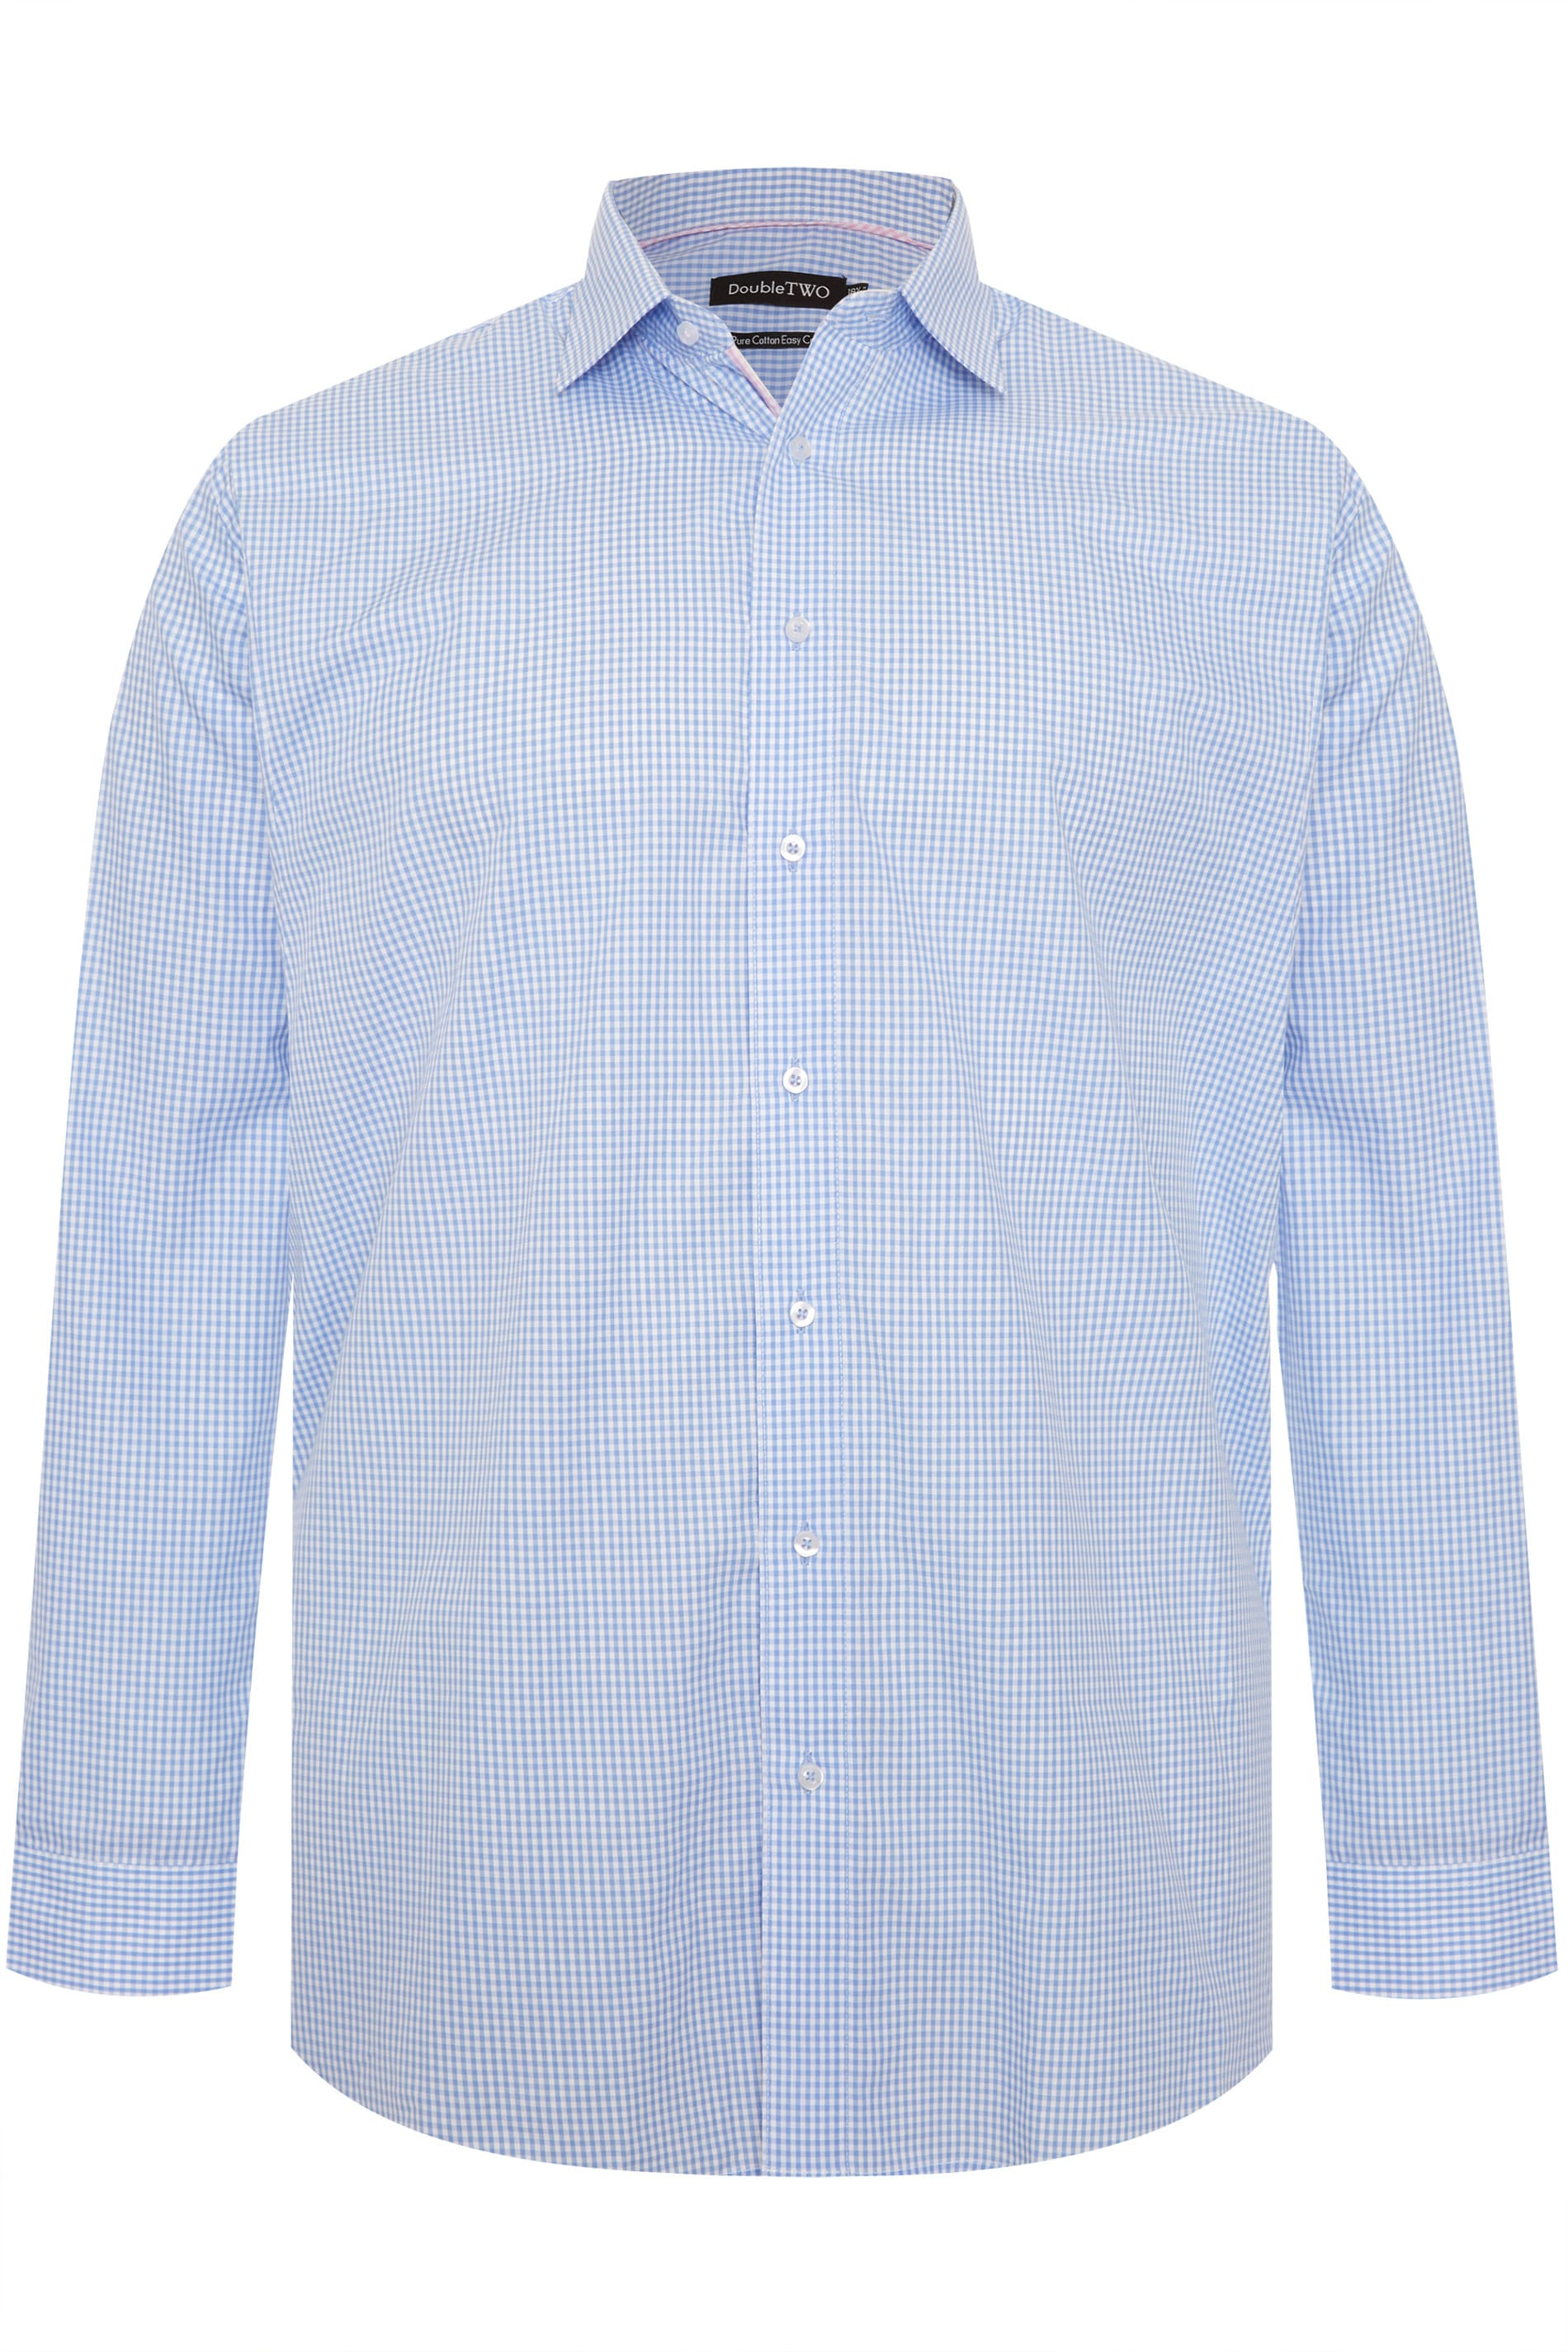 DOUBLE TWO Sky Blue Gingham Check Non-Iron Long Sleeve Shirt